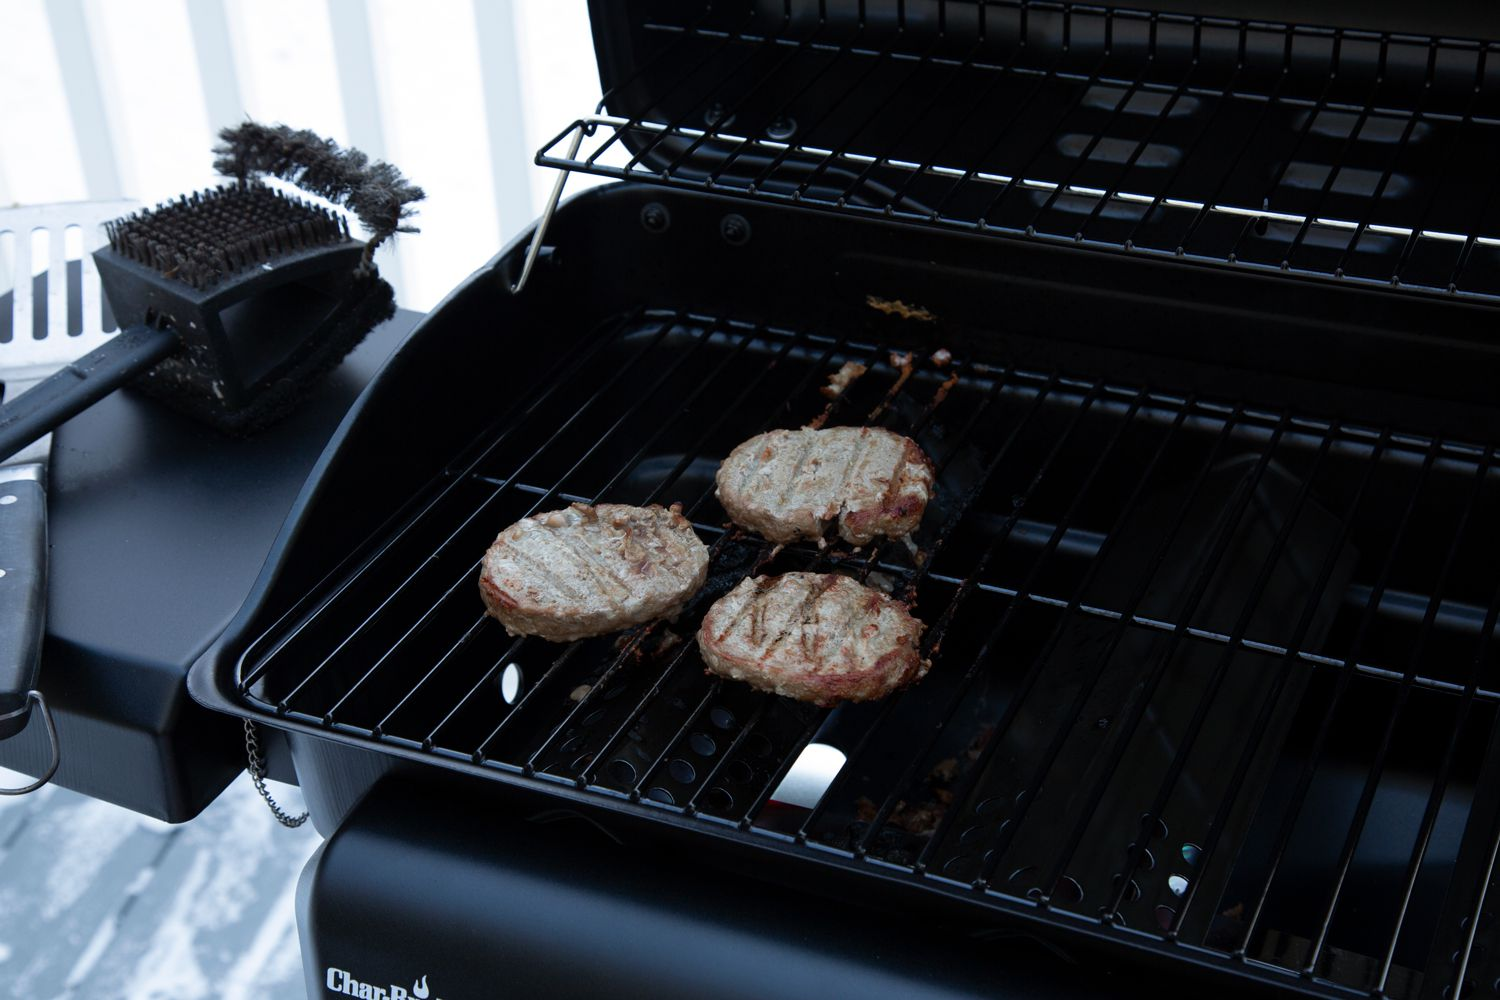 char-broil-classic-360-3-burner-gas-grill-cooking